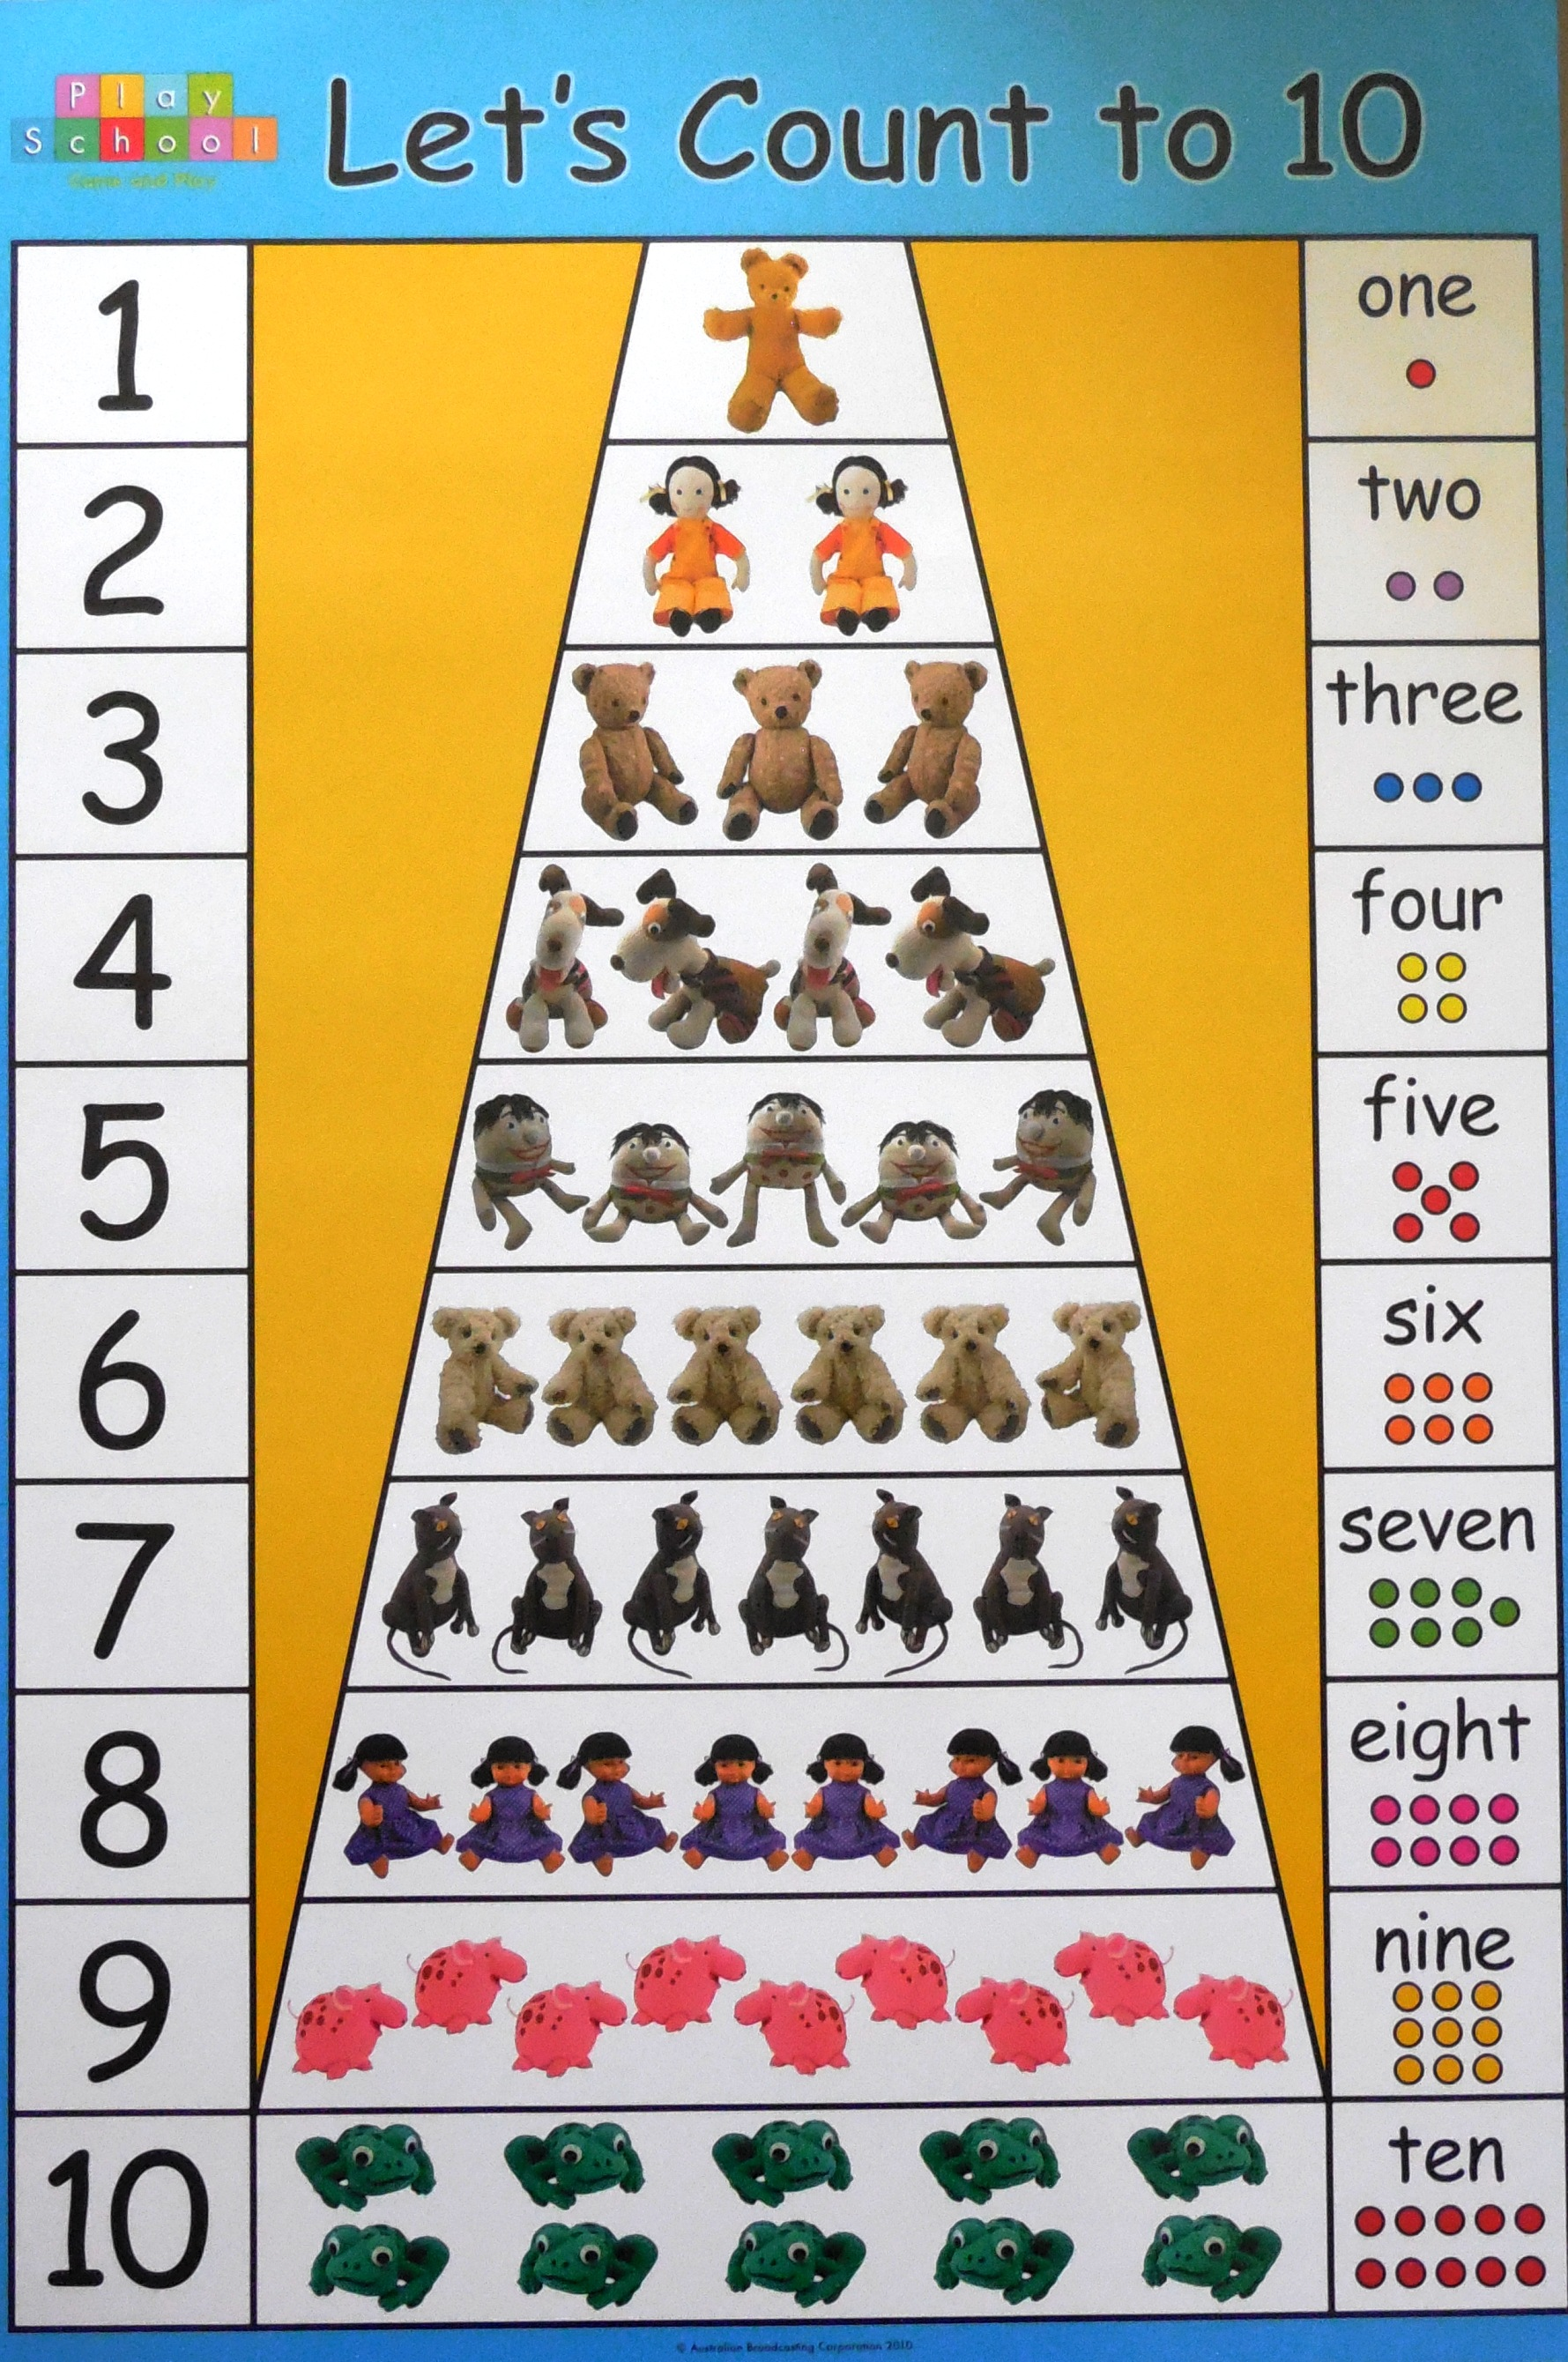 Abc Play School Counting To 10 Poster Learn Heaps